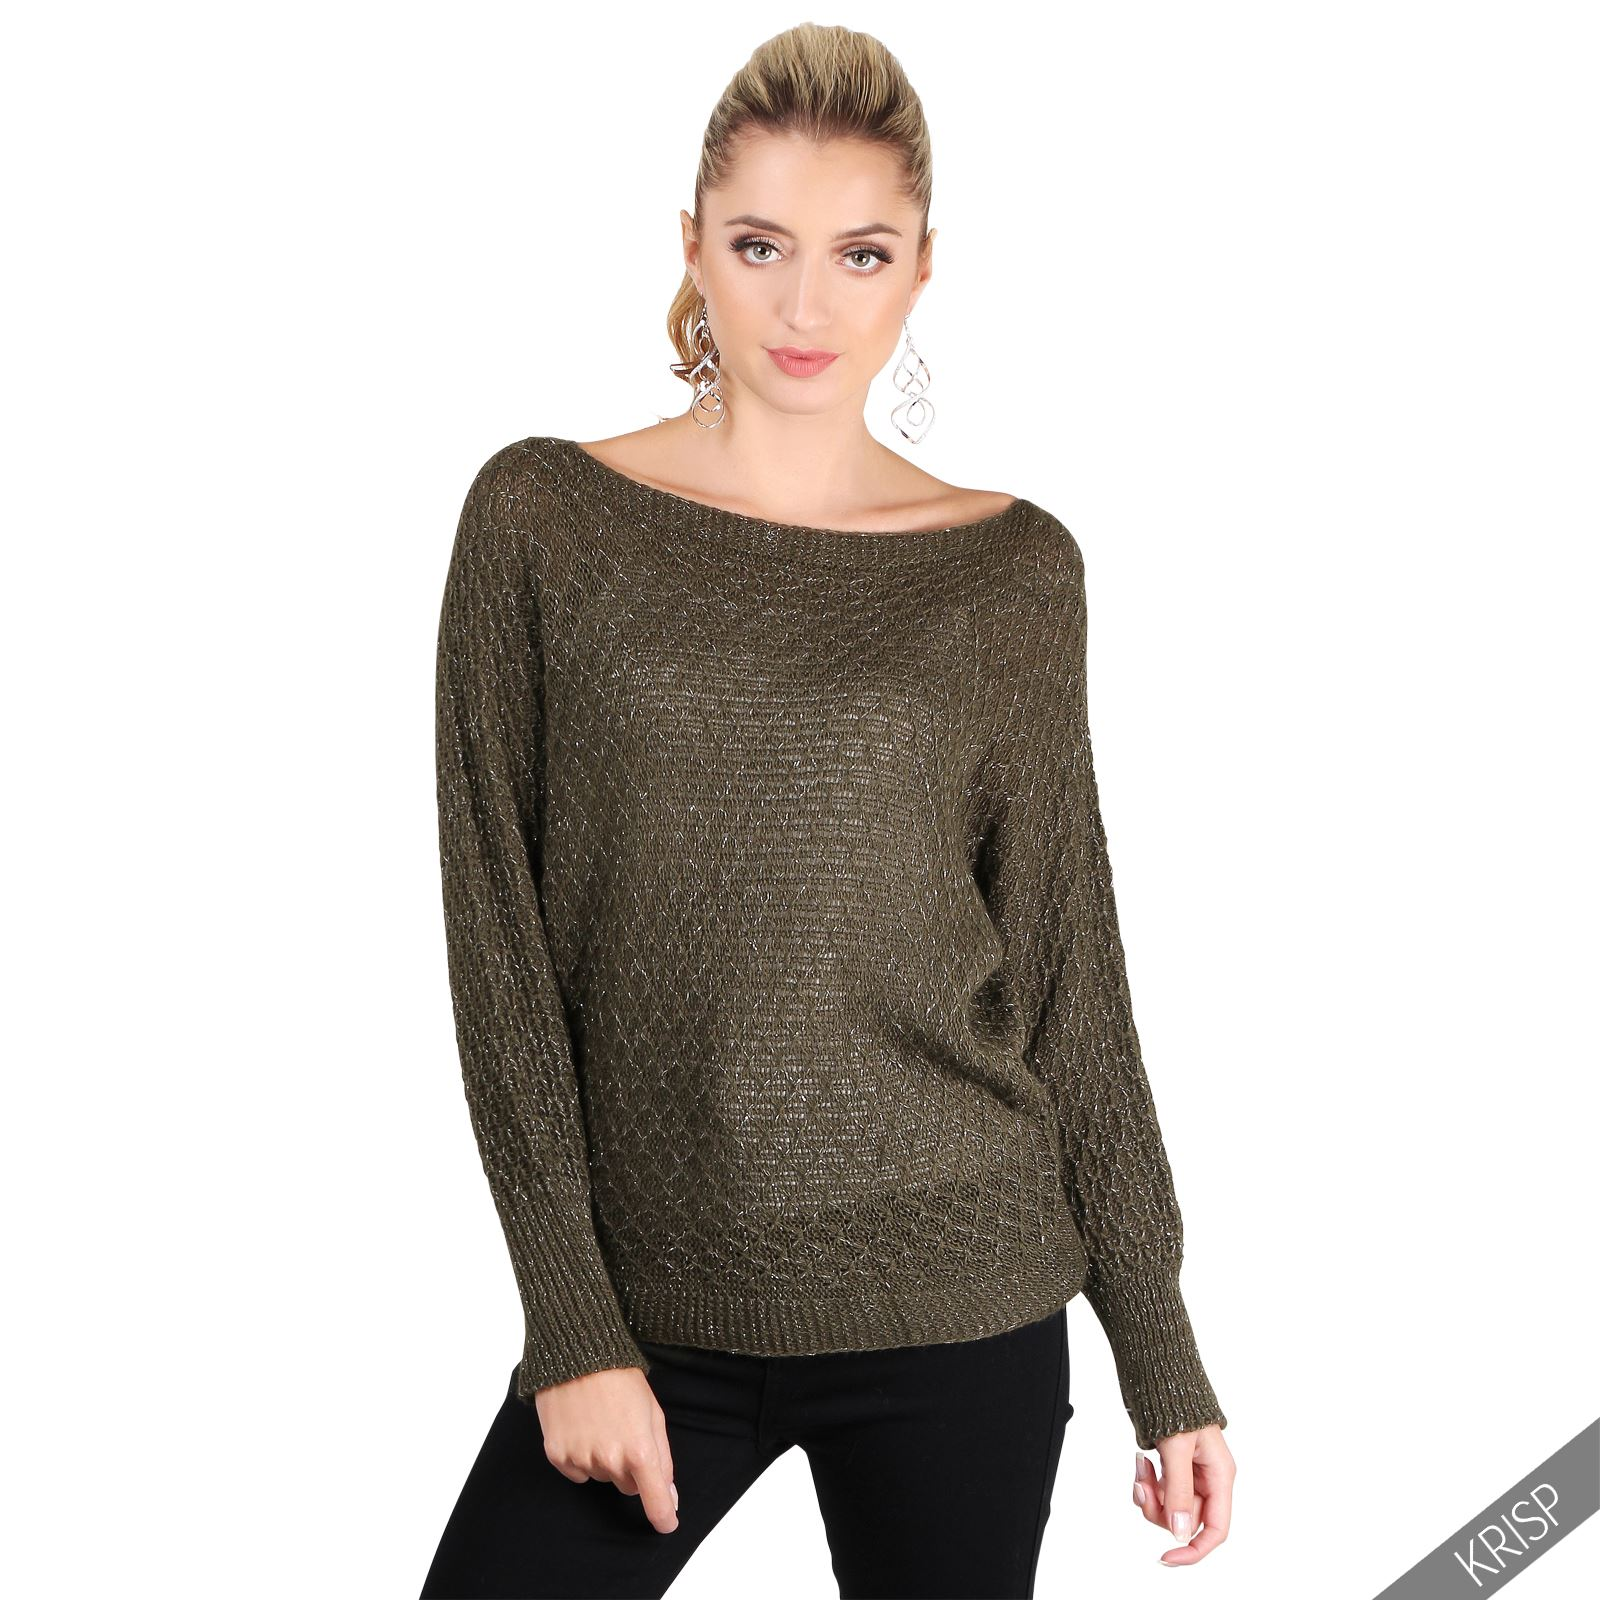 Find a great selection of ladies sweaters at Boscov's. We have the style of sweater to match that cute outfit you have been thinking of. Shop online today!